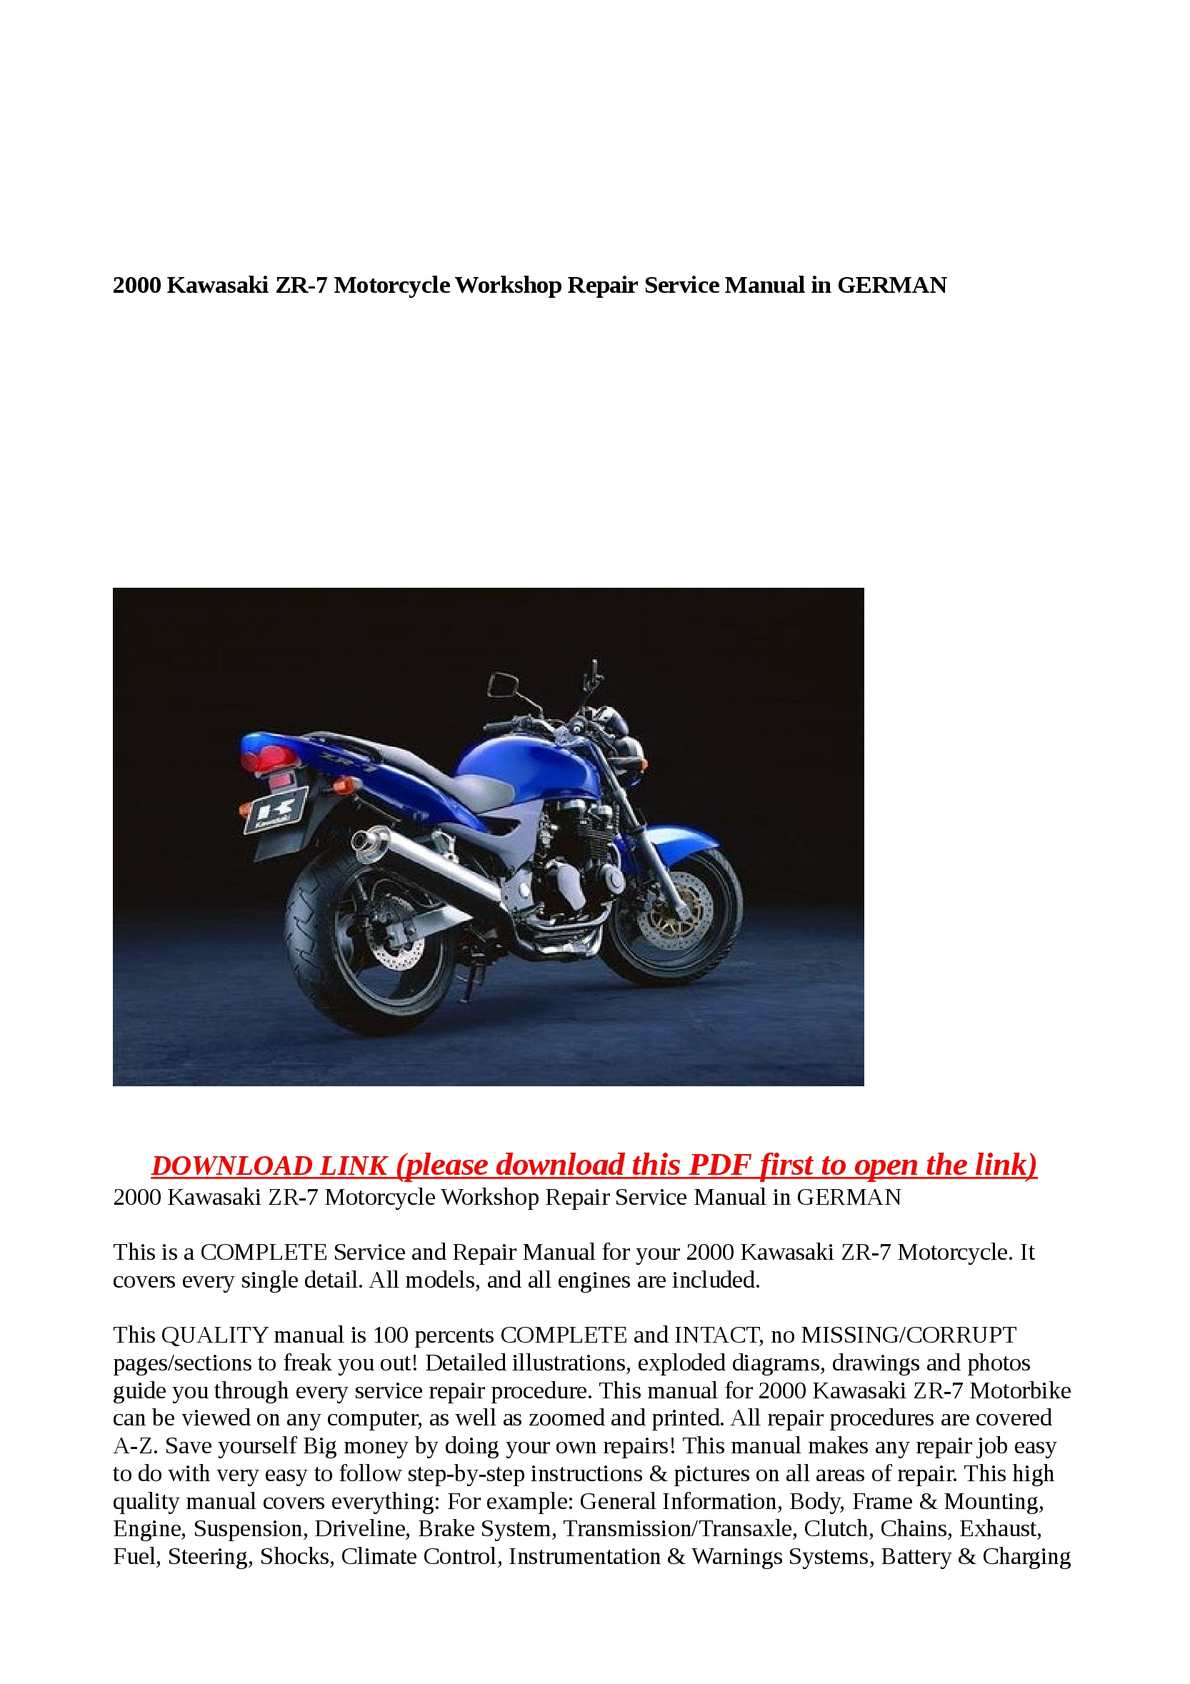 Calaméo - 2000 Kawasaki ZR-7 Motorcycle Workshop Repair Service Manual in